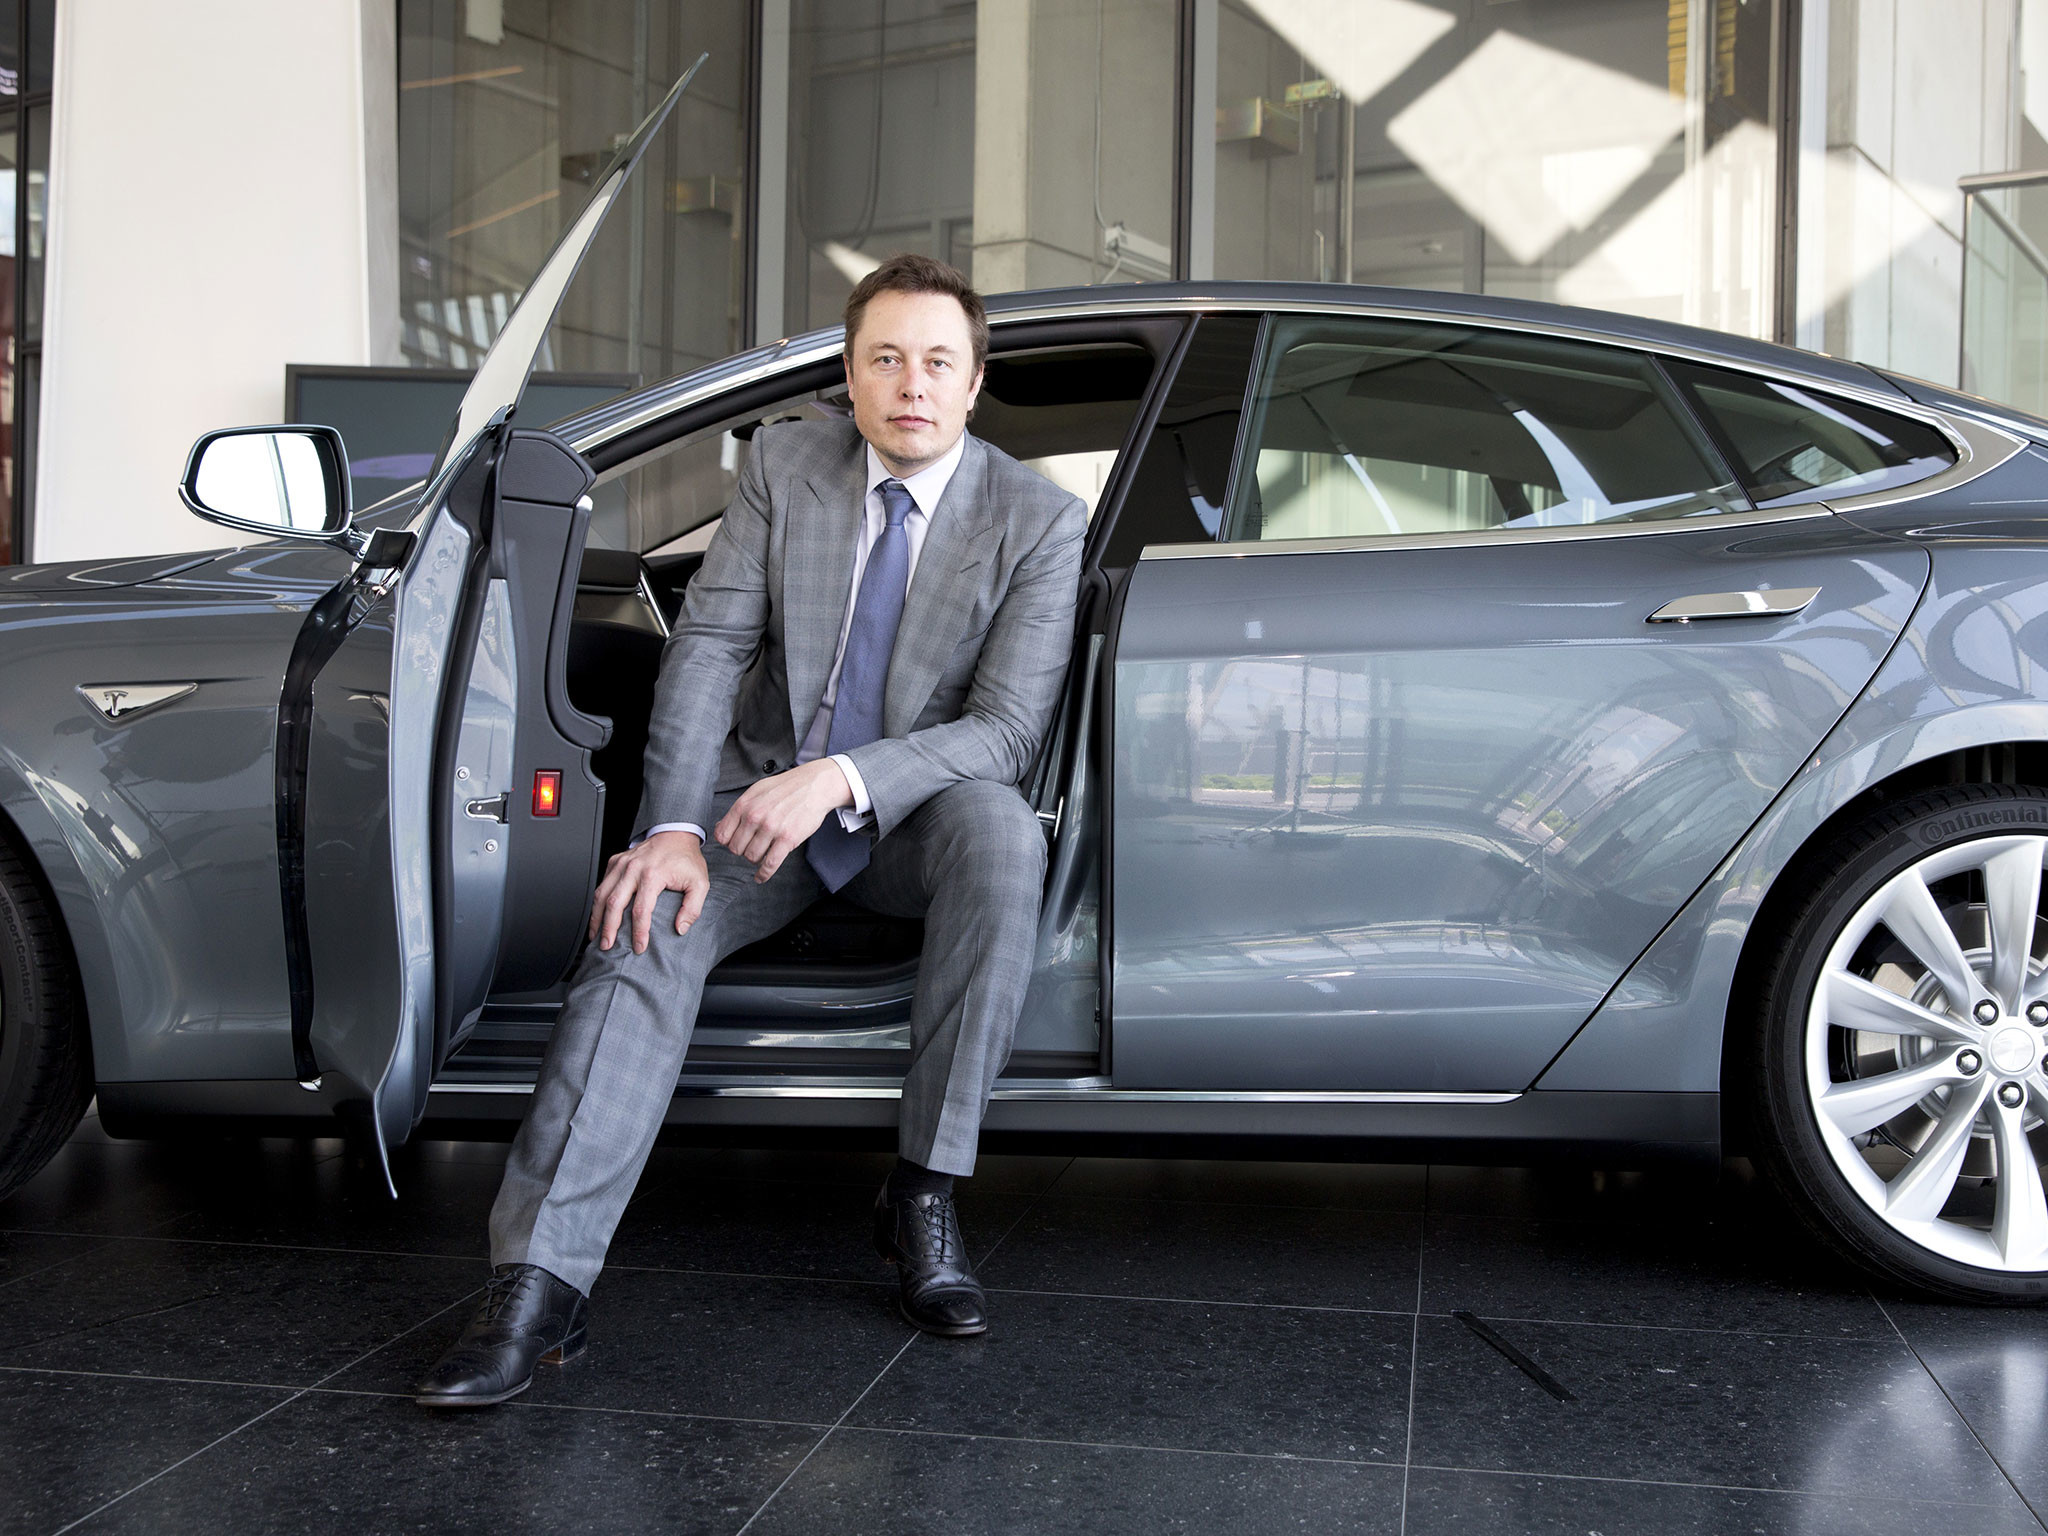 Elon Musk teases 'epic' Tesla product launch, but is it a self-driving  vehicle? | The Independent